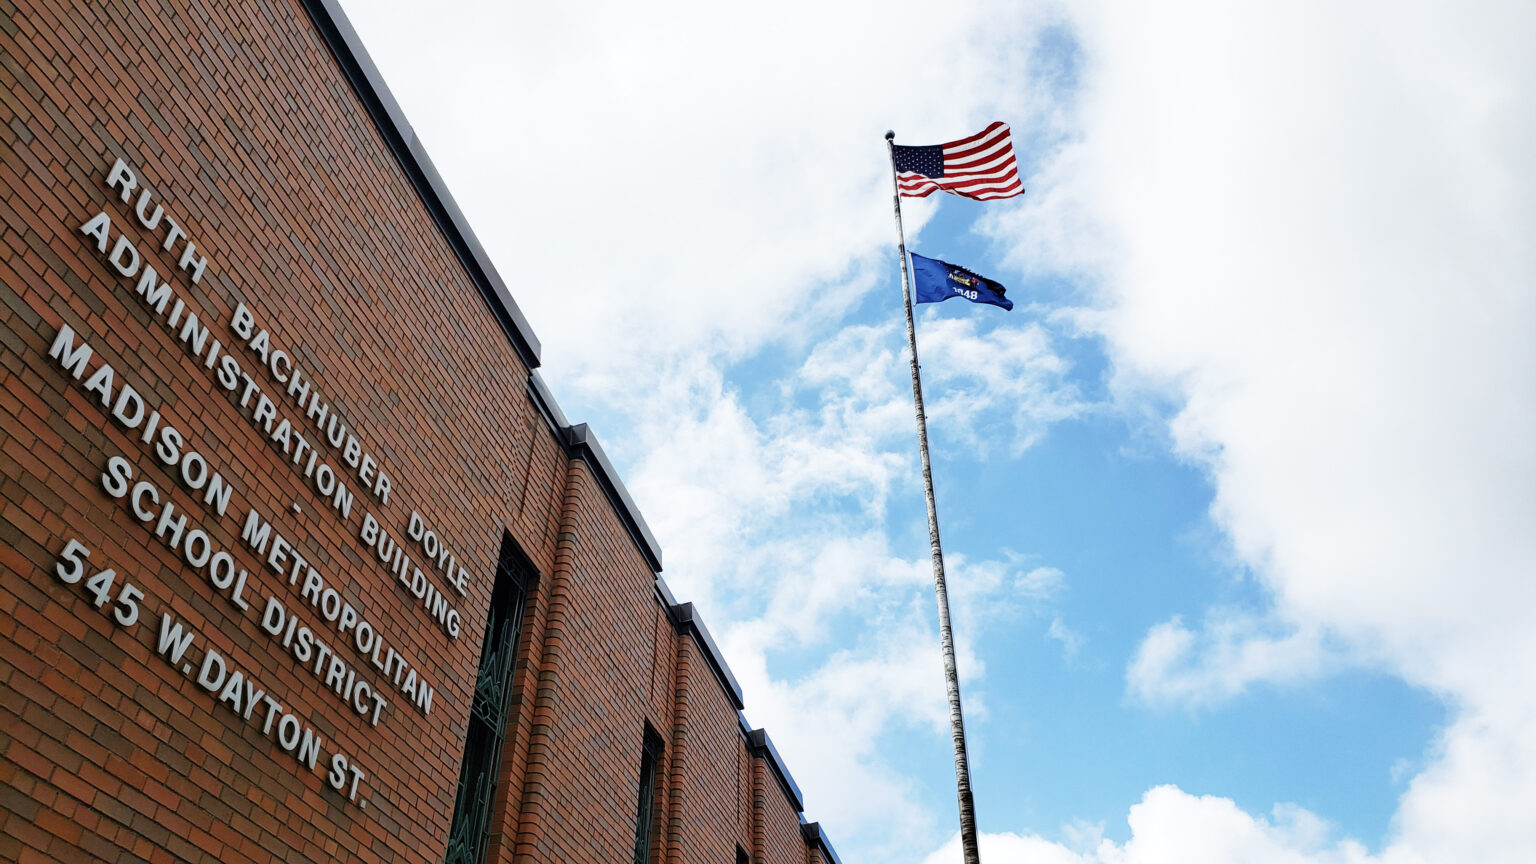 A view of the Madison Metropolitan School District administrative office building with a flag pole flying the USA and Wisconsin flags